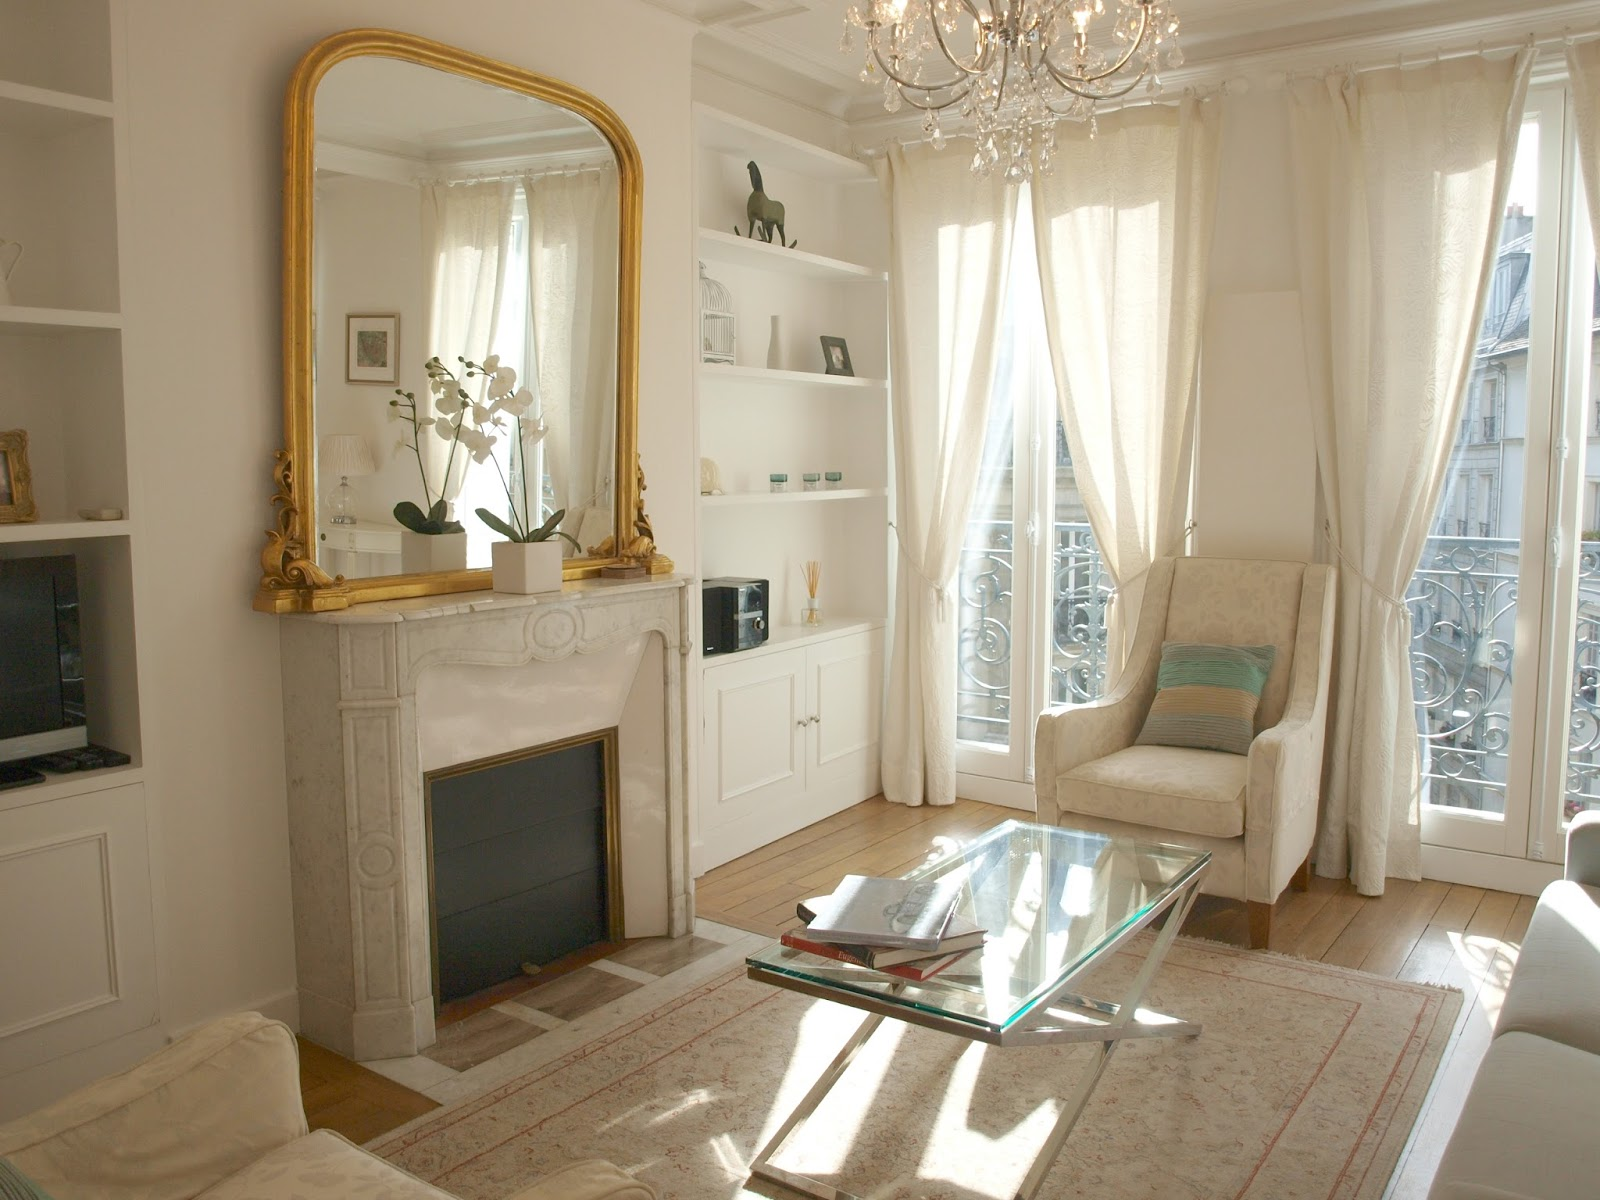 Gorgeous white Paris apartment decor with chandelier and balcony - by Hello Lovely Studio